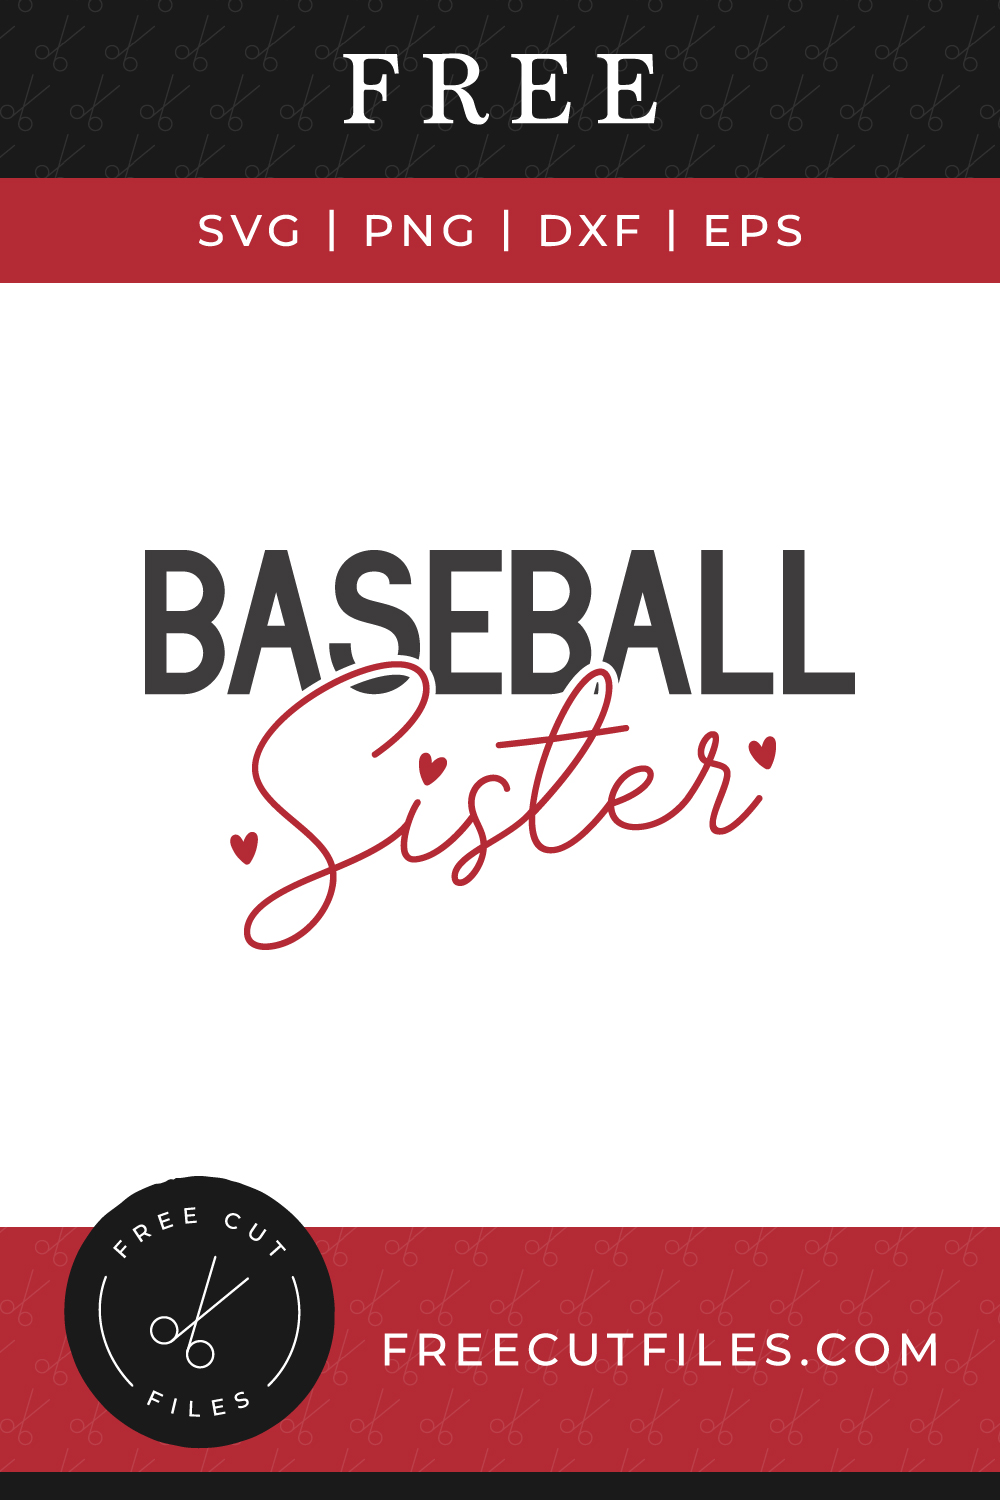 Baseball Sister Free SVG quote cut file